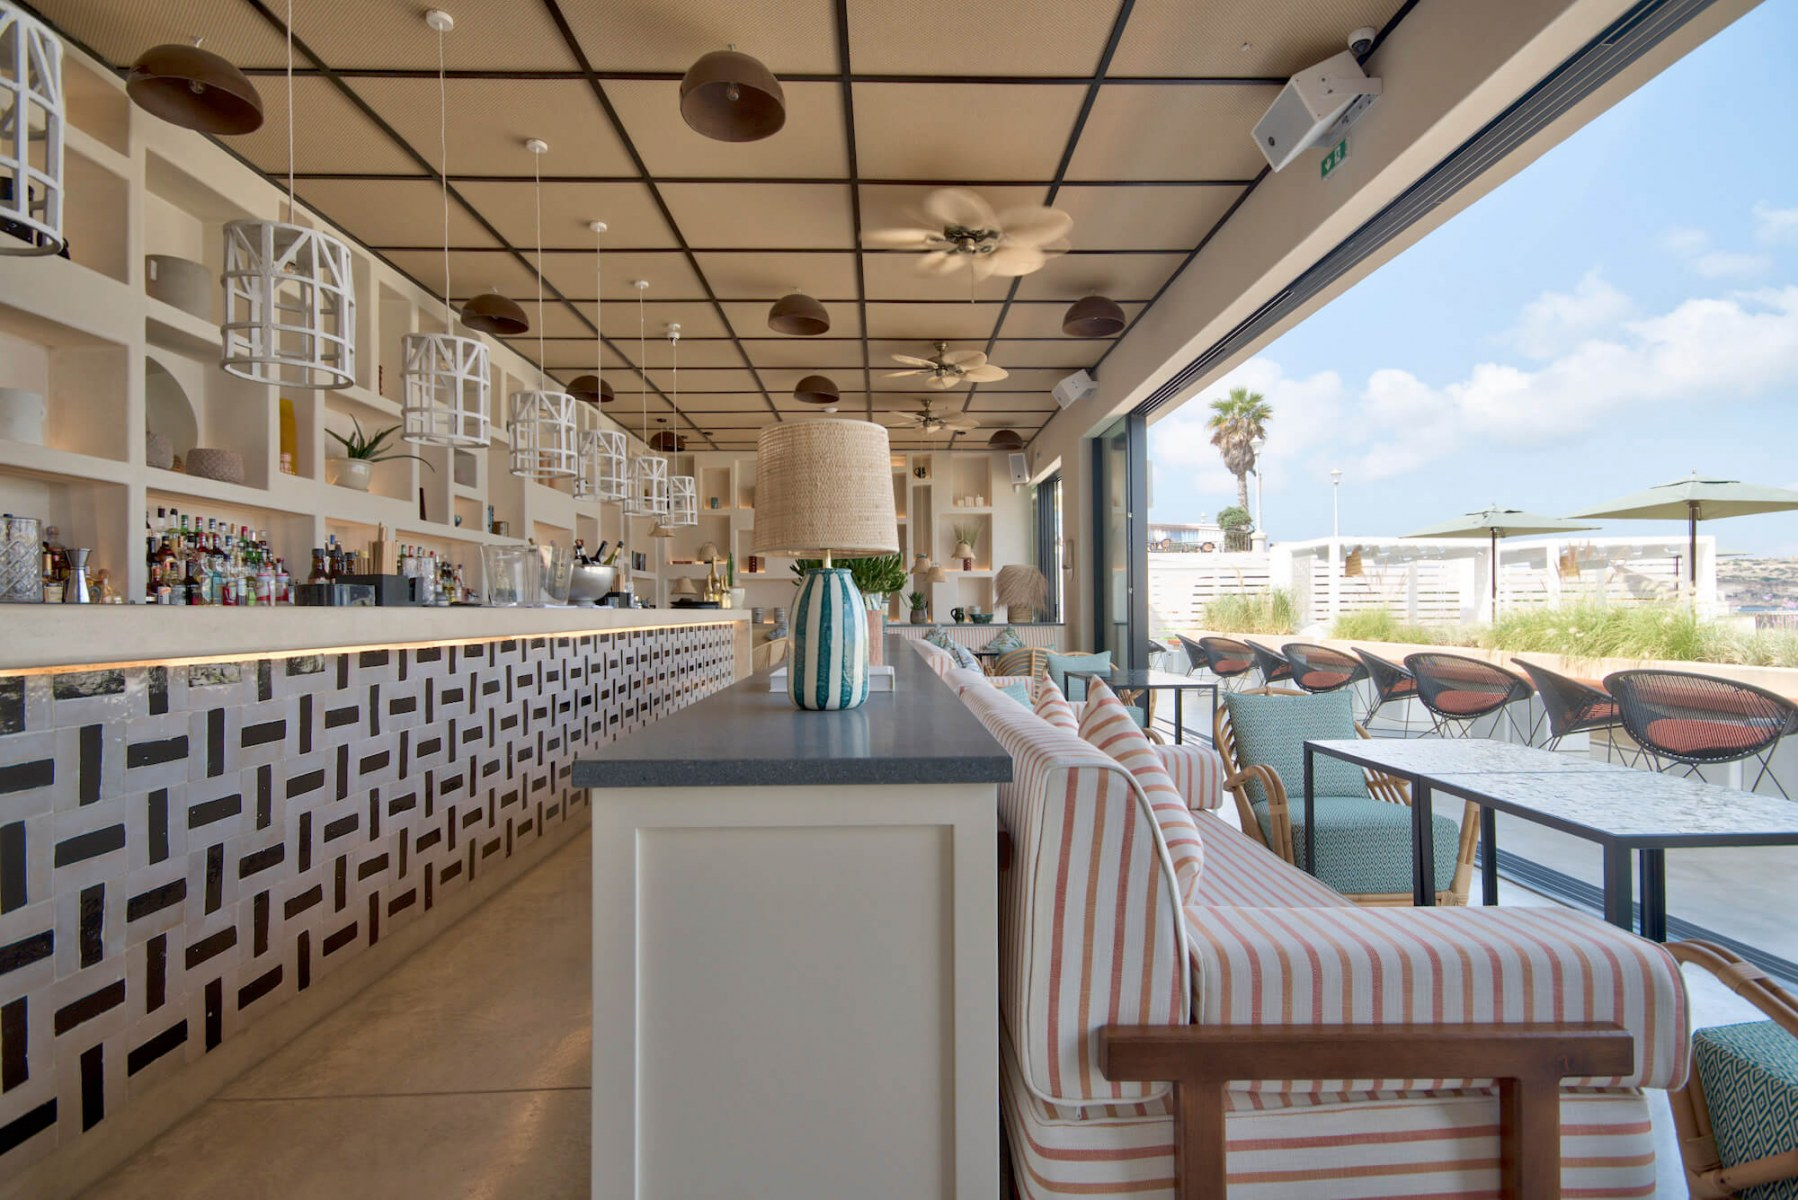 Pietra Lavica Tops at Beef Bar, by Halmann Vella